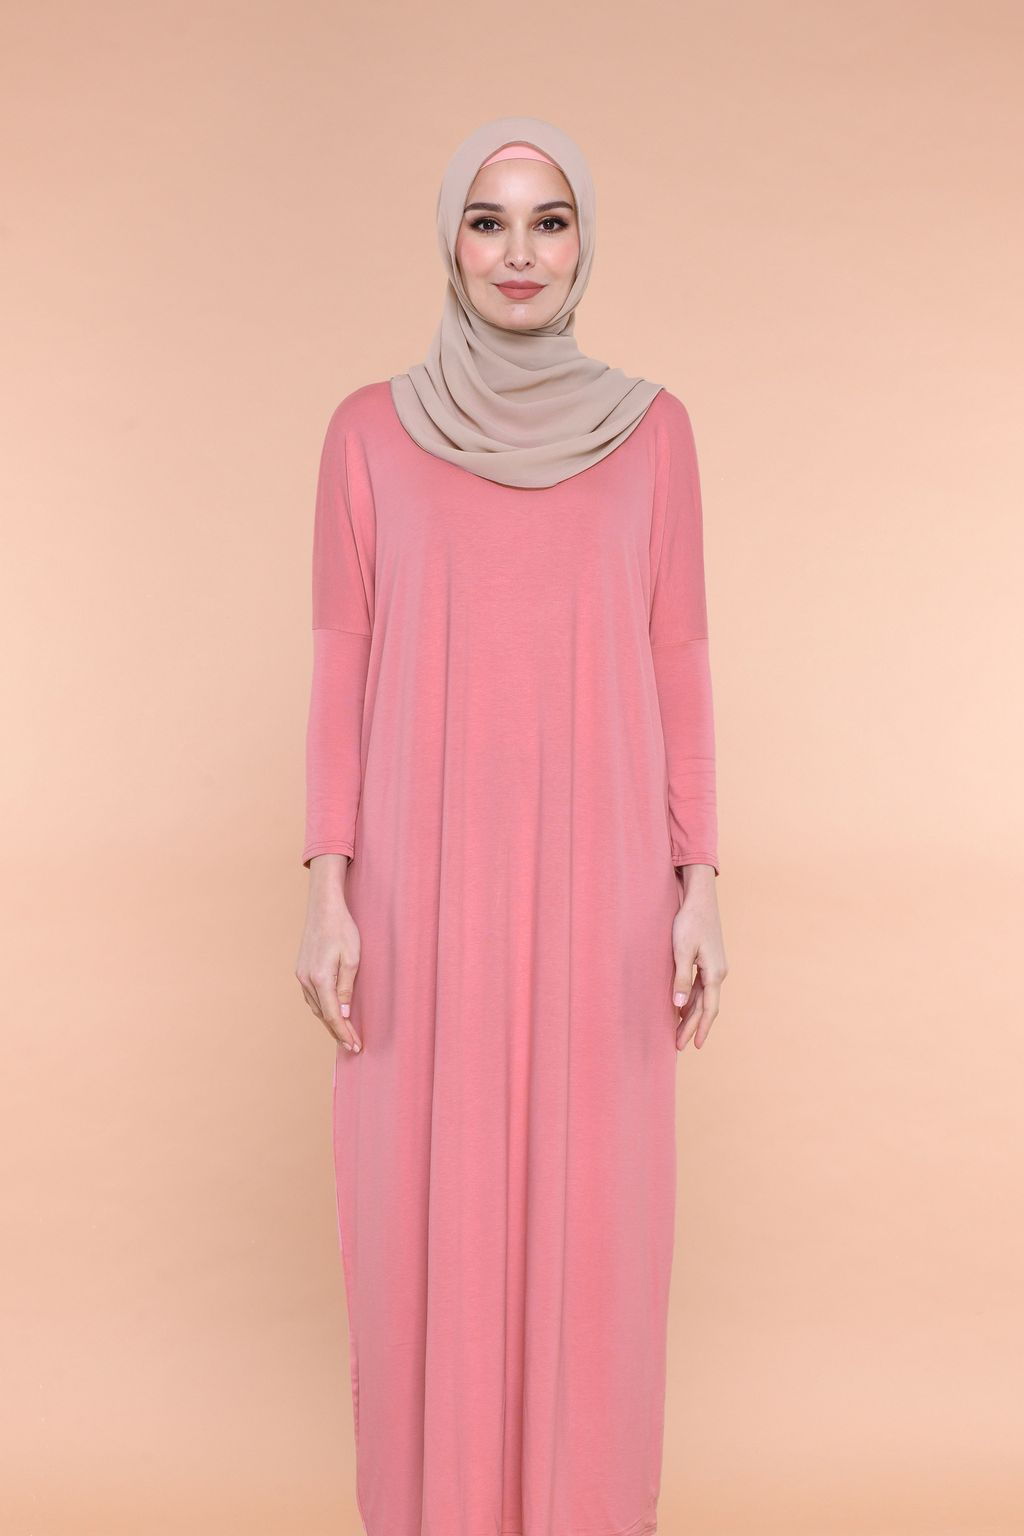 Batwing Dress in Coral Pink.jpg